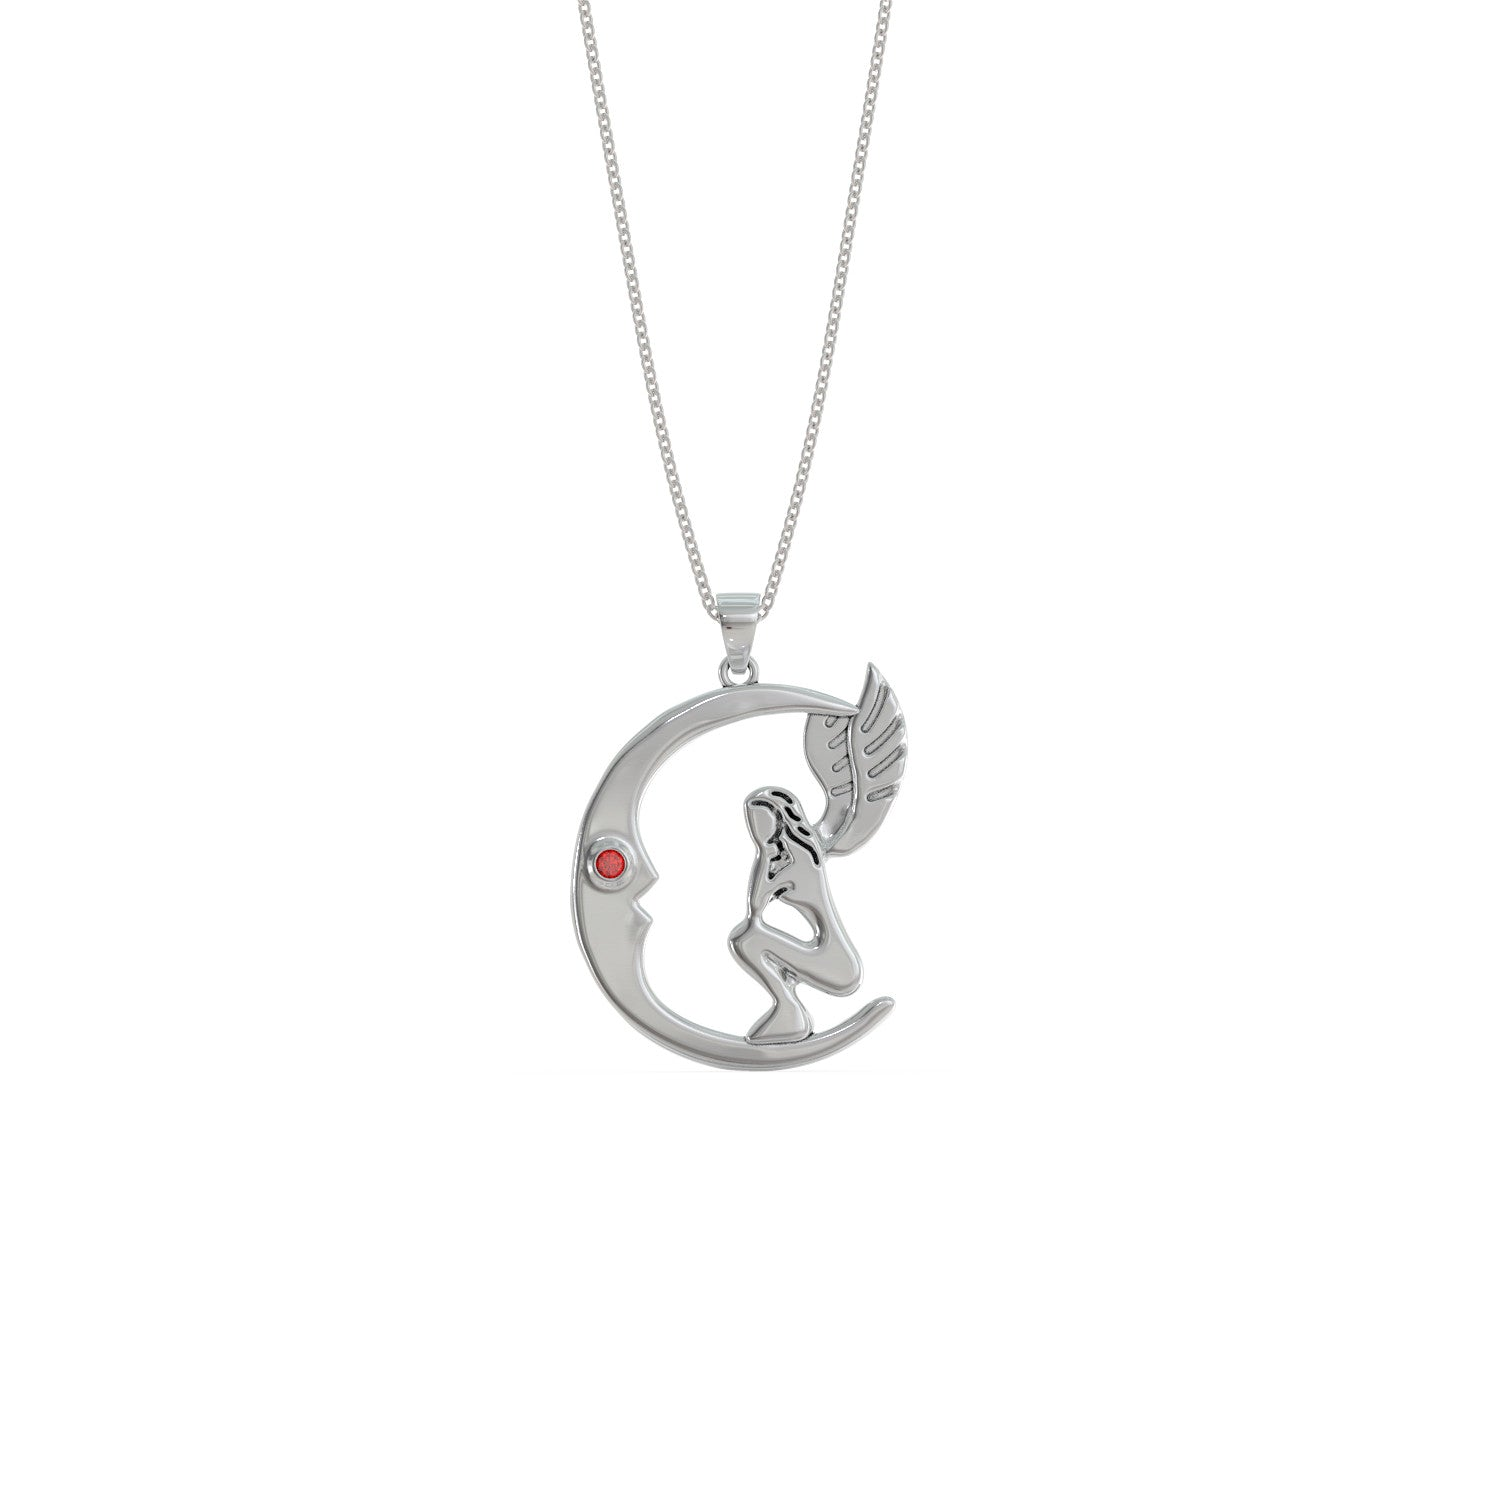 box pendant trends inch products chain necklace silver pixie sterling jewelry fairy on